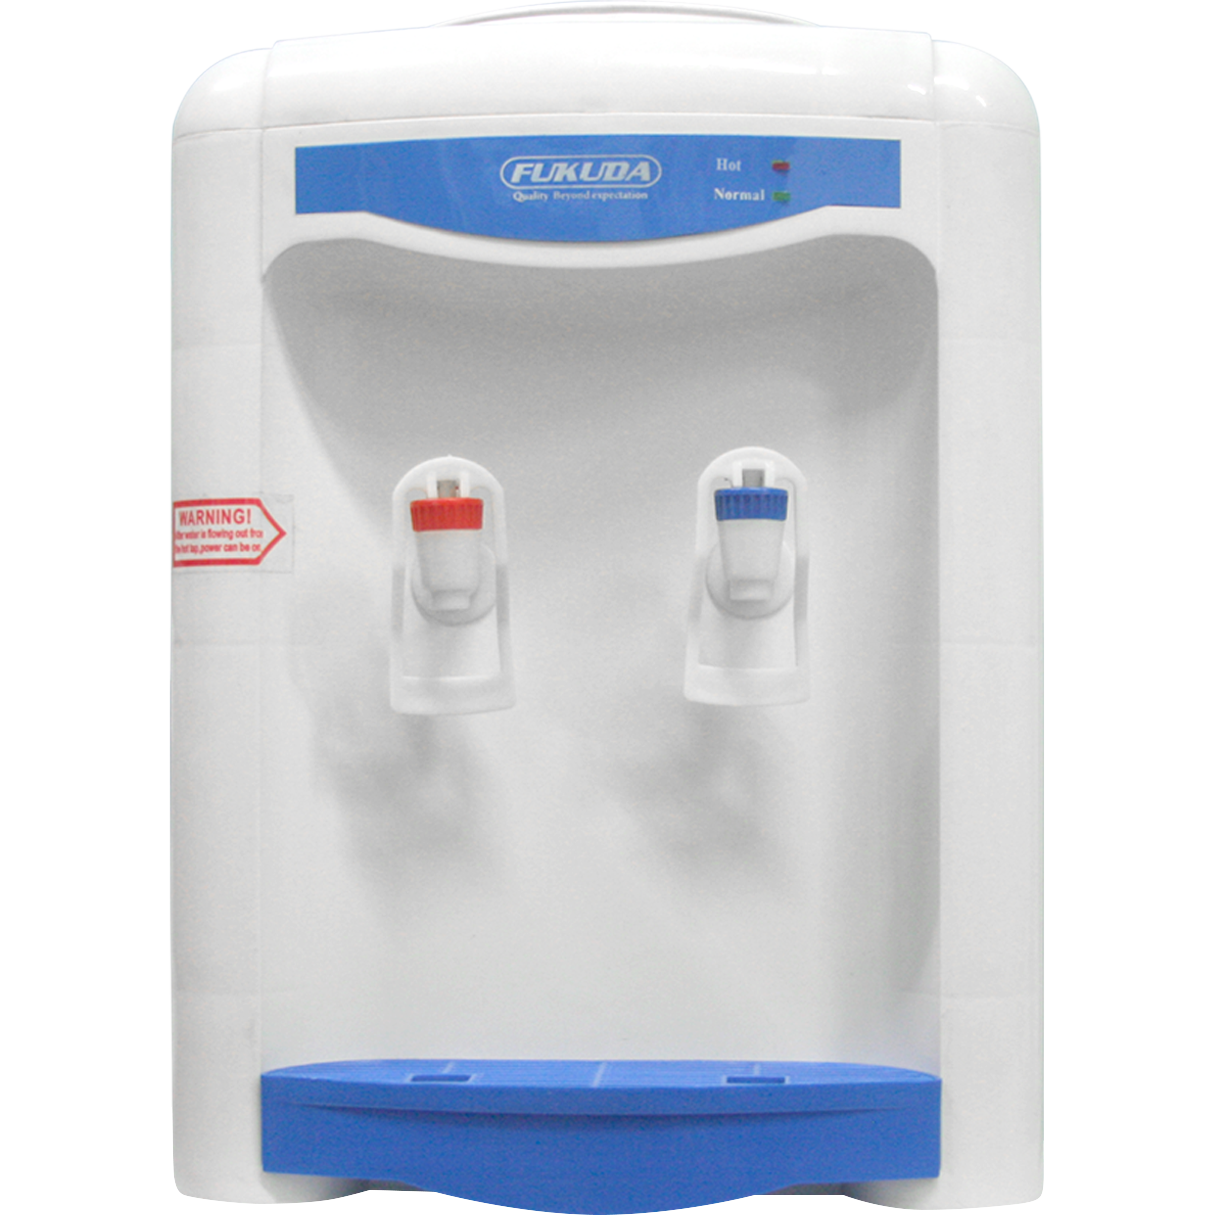 Fukuda FWD 788L Table Top Hot And Normal Water Dispenser